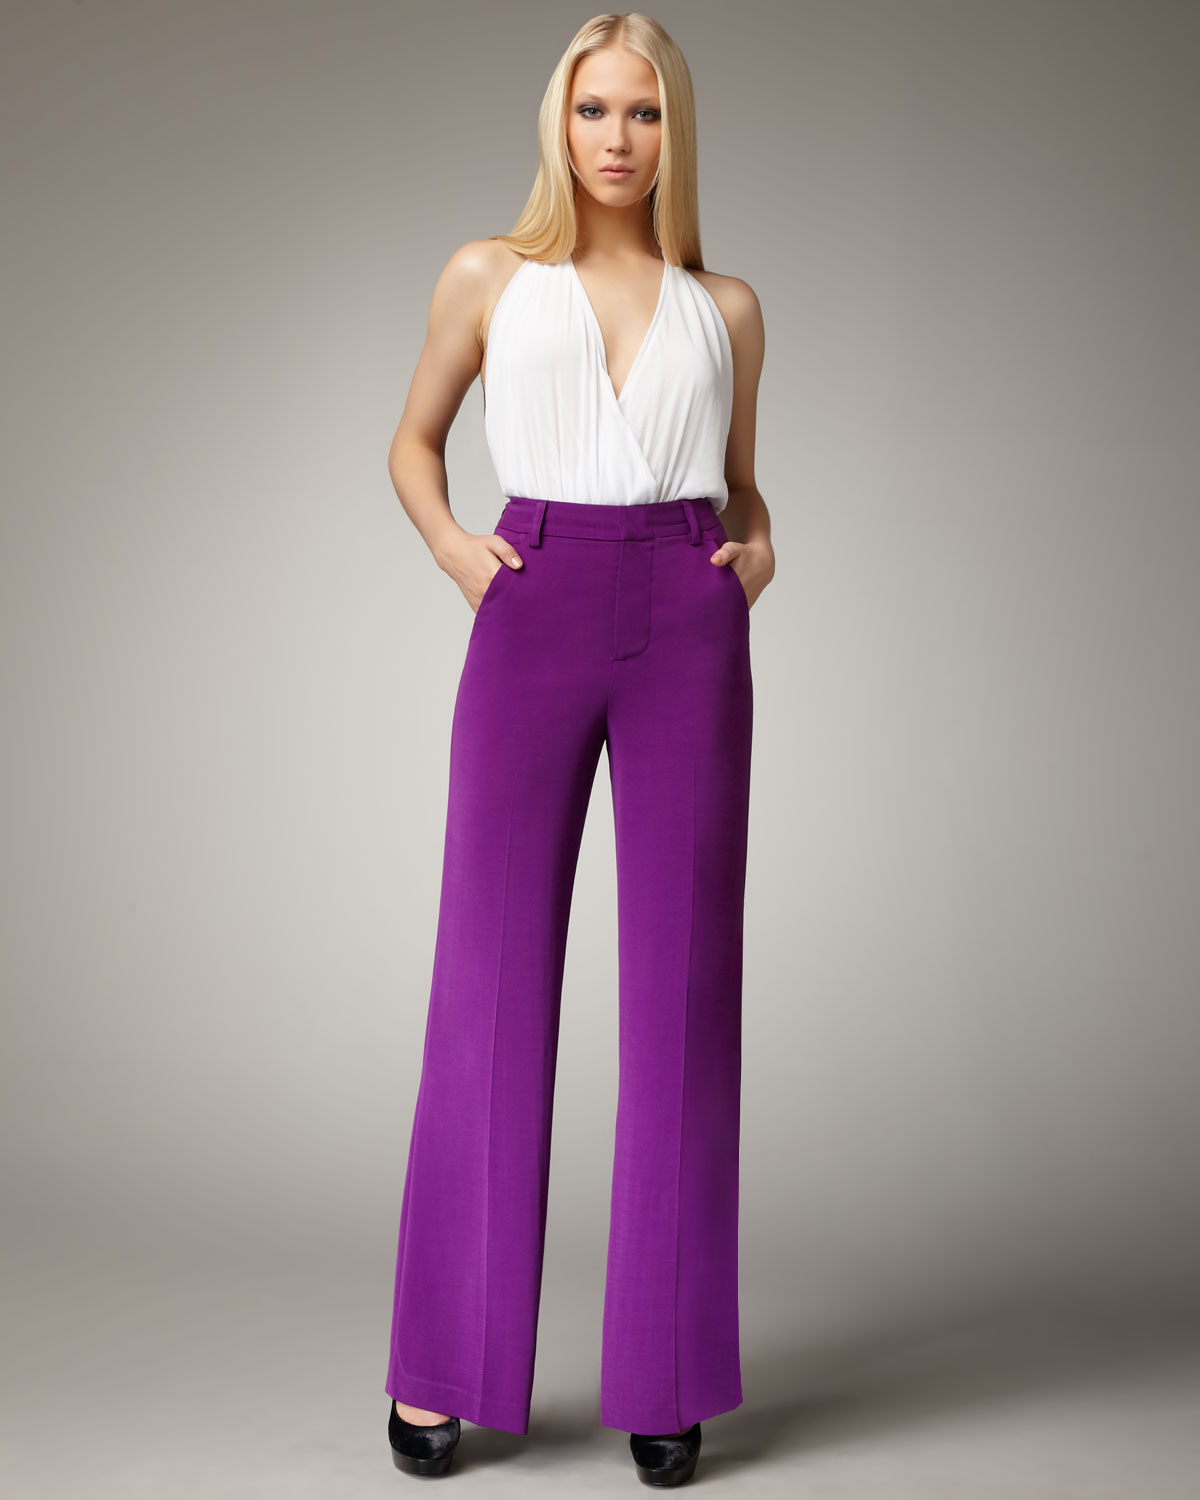 Alice   olivia High-waisted Wide Leg Pants in Purple | Lyst